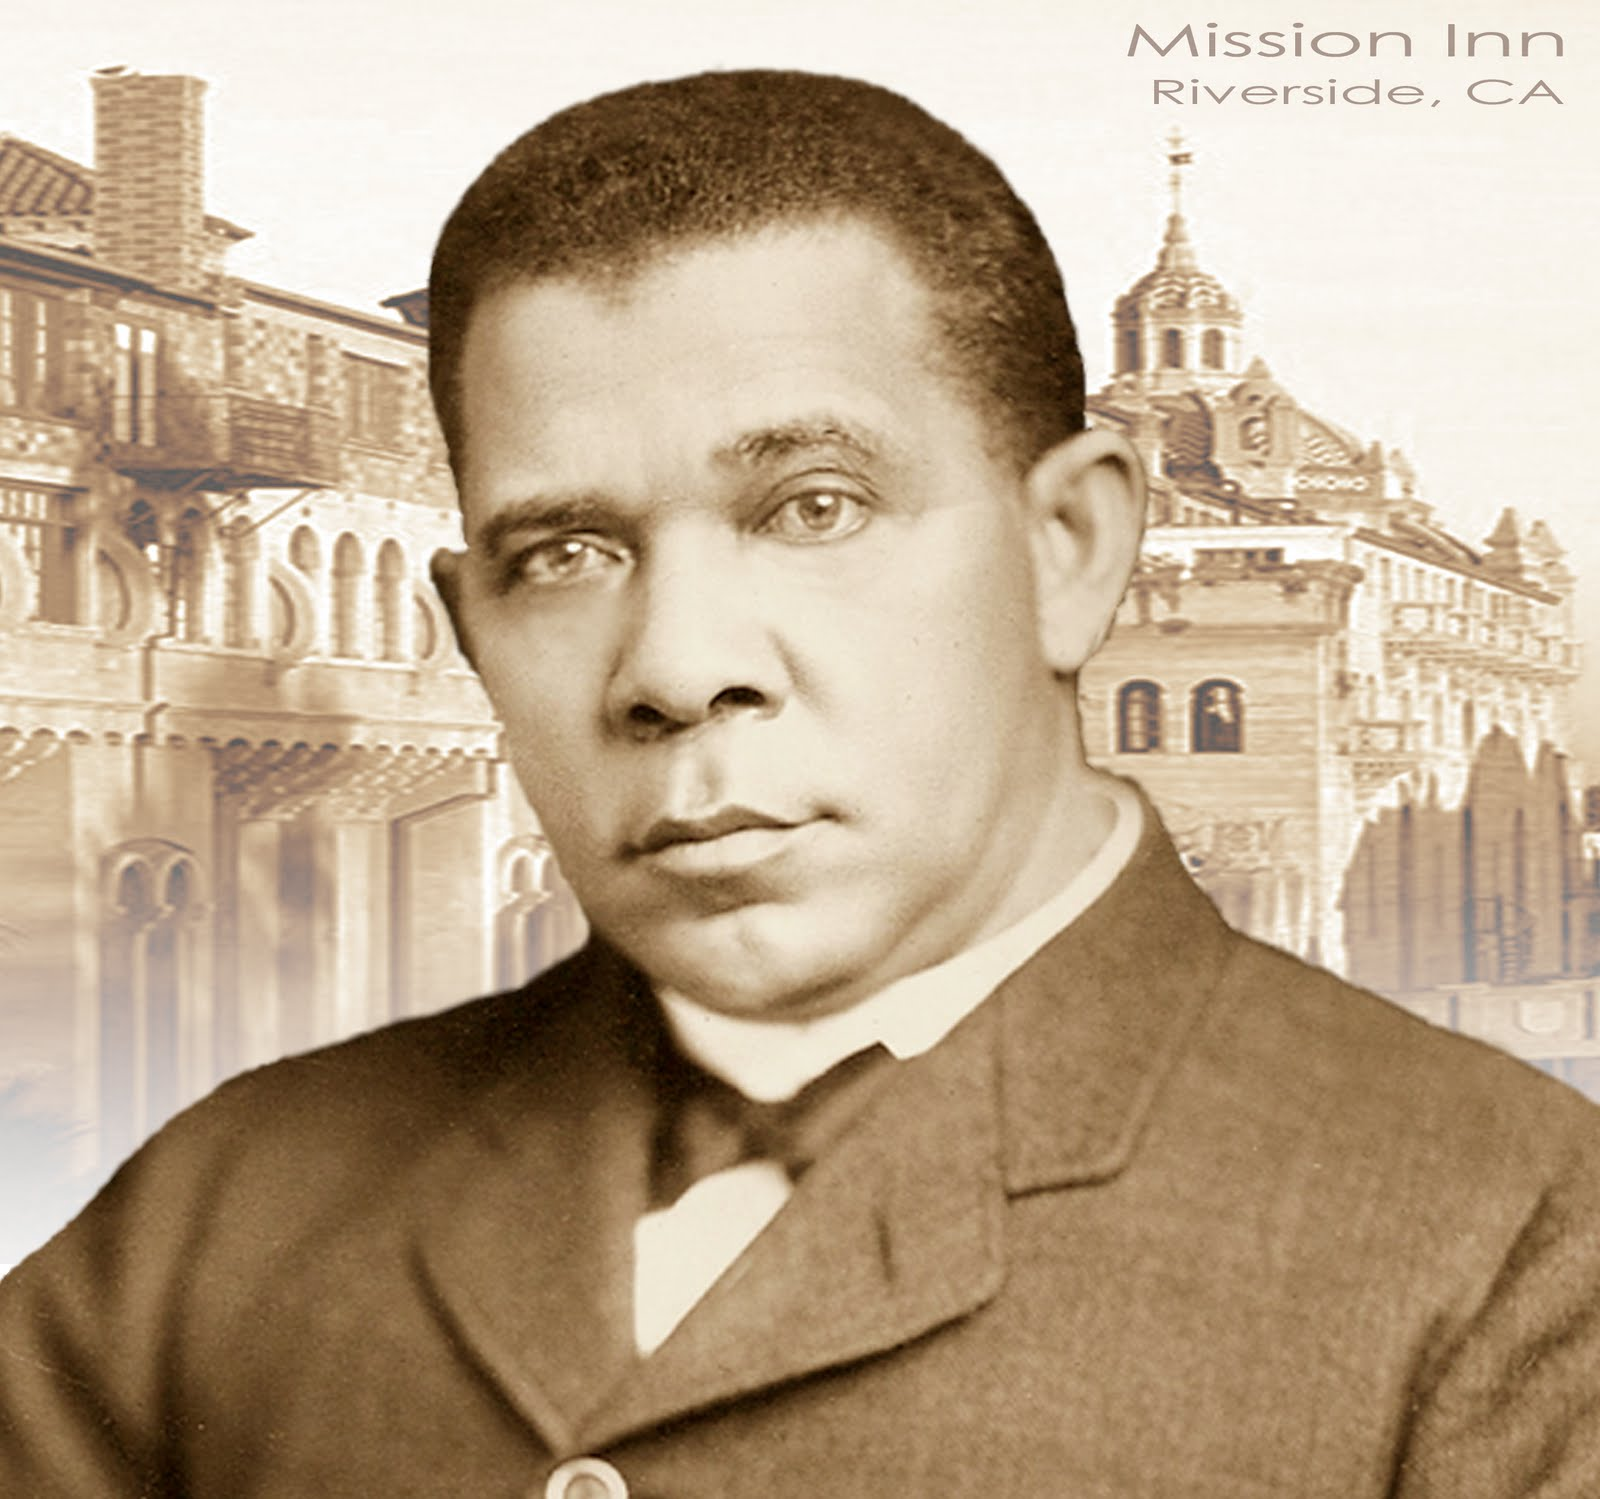 a biography of booker t washington a black civil rights activist Grimk , archibald h - civil rights activist web du bois and booker t washington to create institutions that promoted education and opportunities for blacks which were originally black and white or sepia tone.